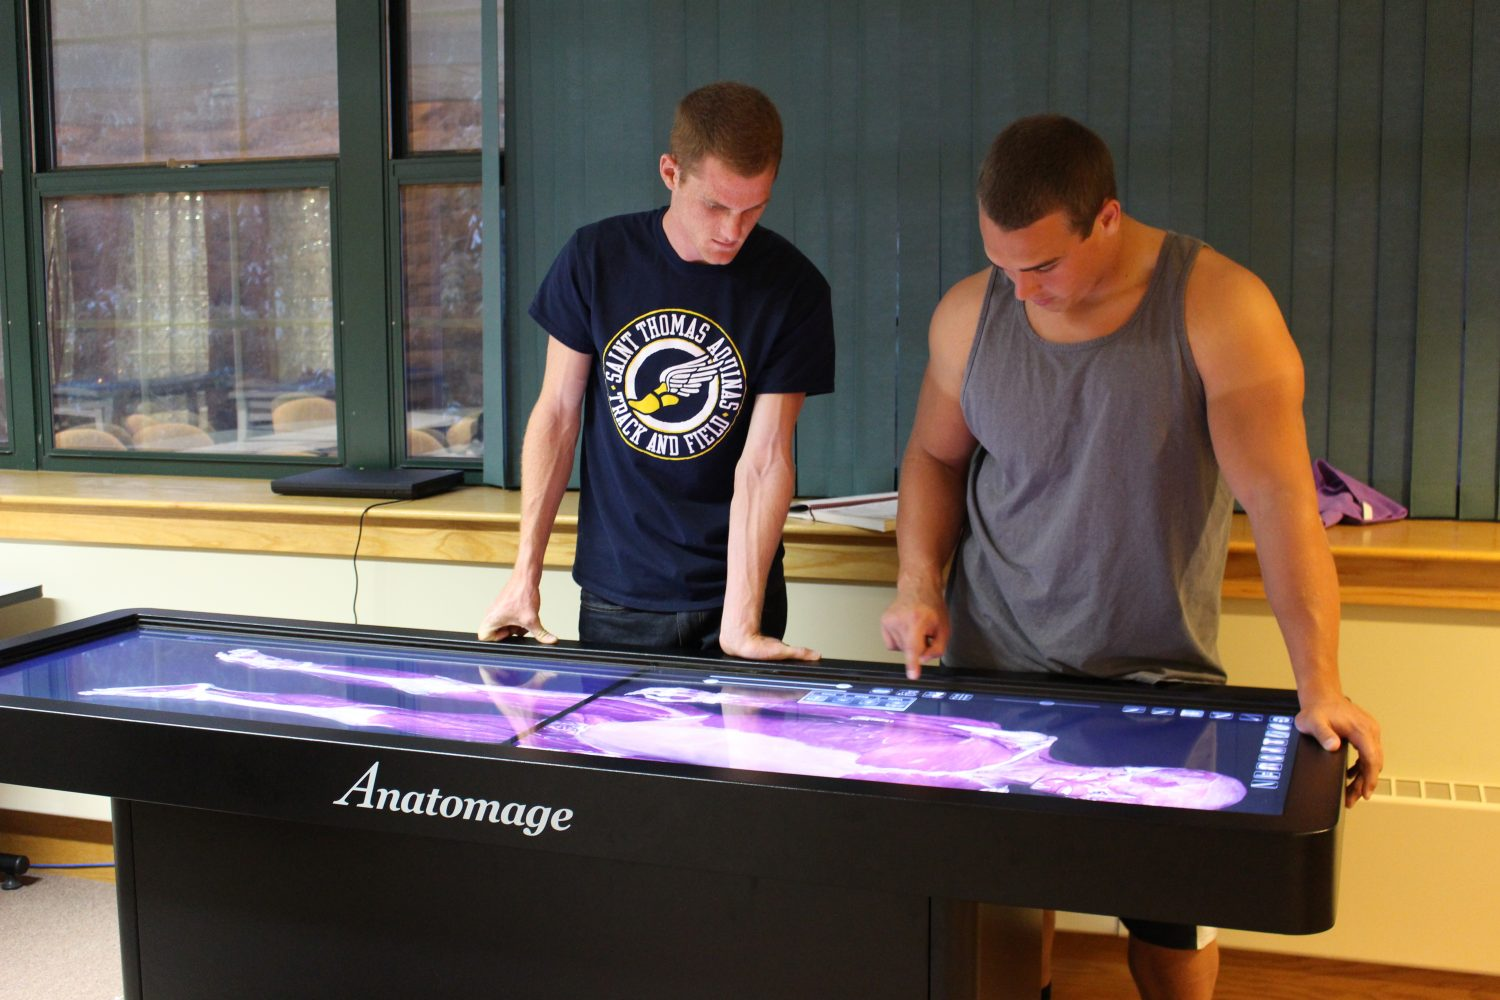 Exercise+Science+students+Joe+Linder+and+Josh+Kock+use+the+Anatomage+table+in+Mabee+Hall.+The+Anatomage+table+replaces+traditional+cadaver+labs.+Image+by+Jenna+Black.